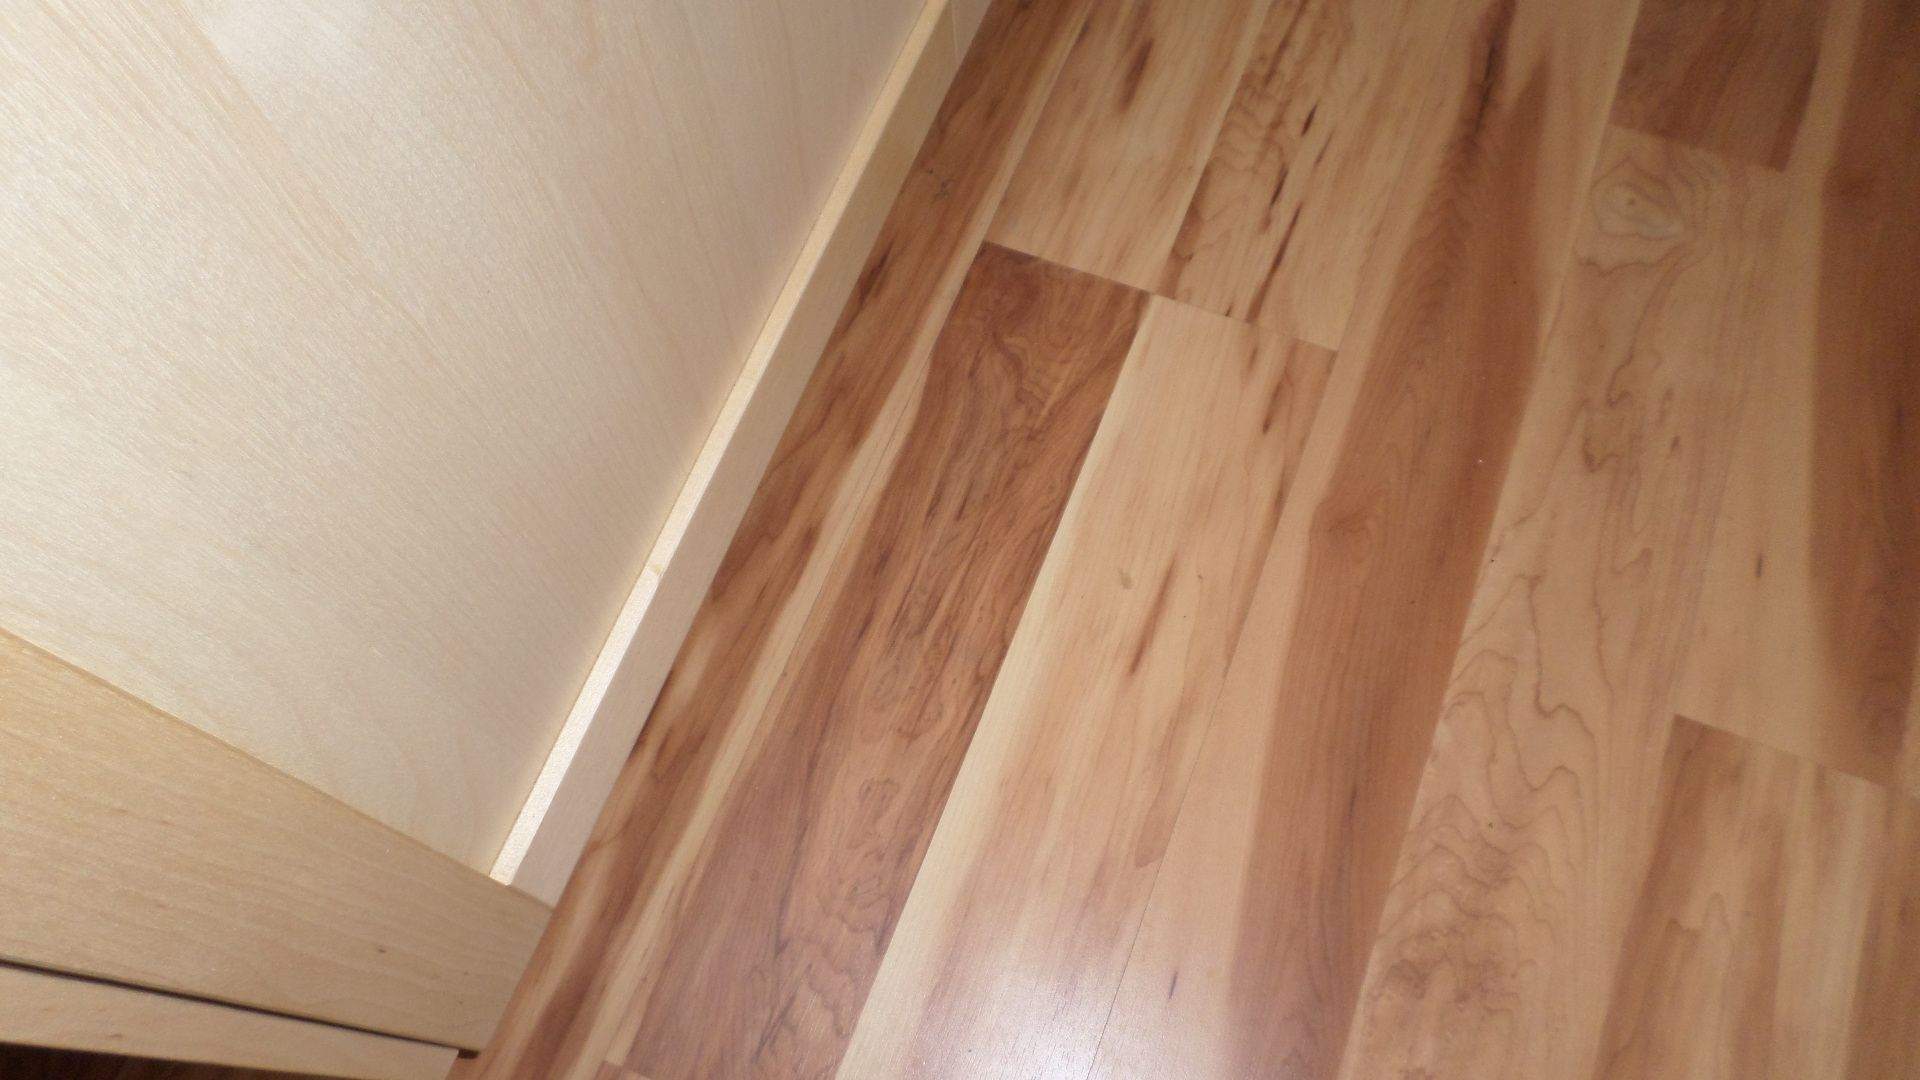 2nd View Pergo Xp Sugar House Maple Flooring With Orsa